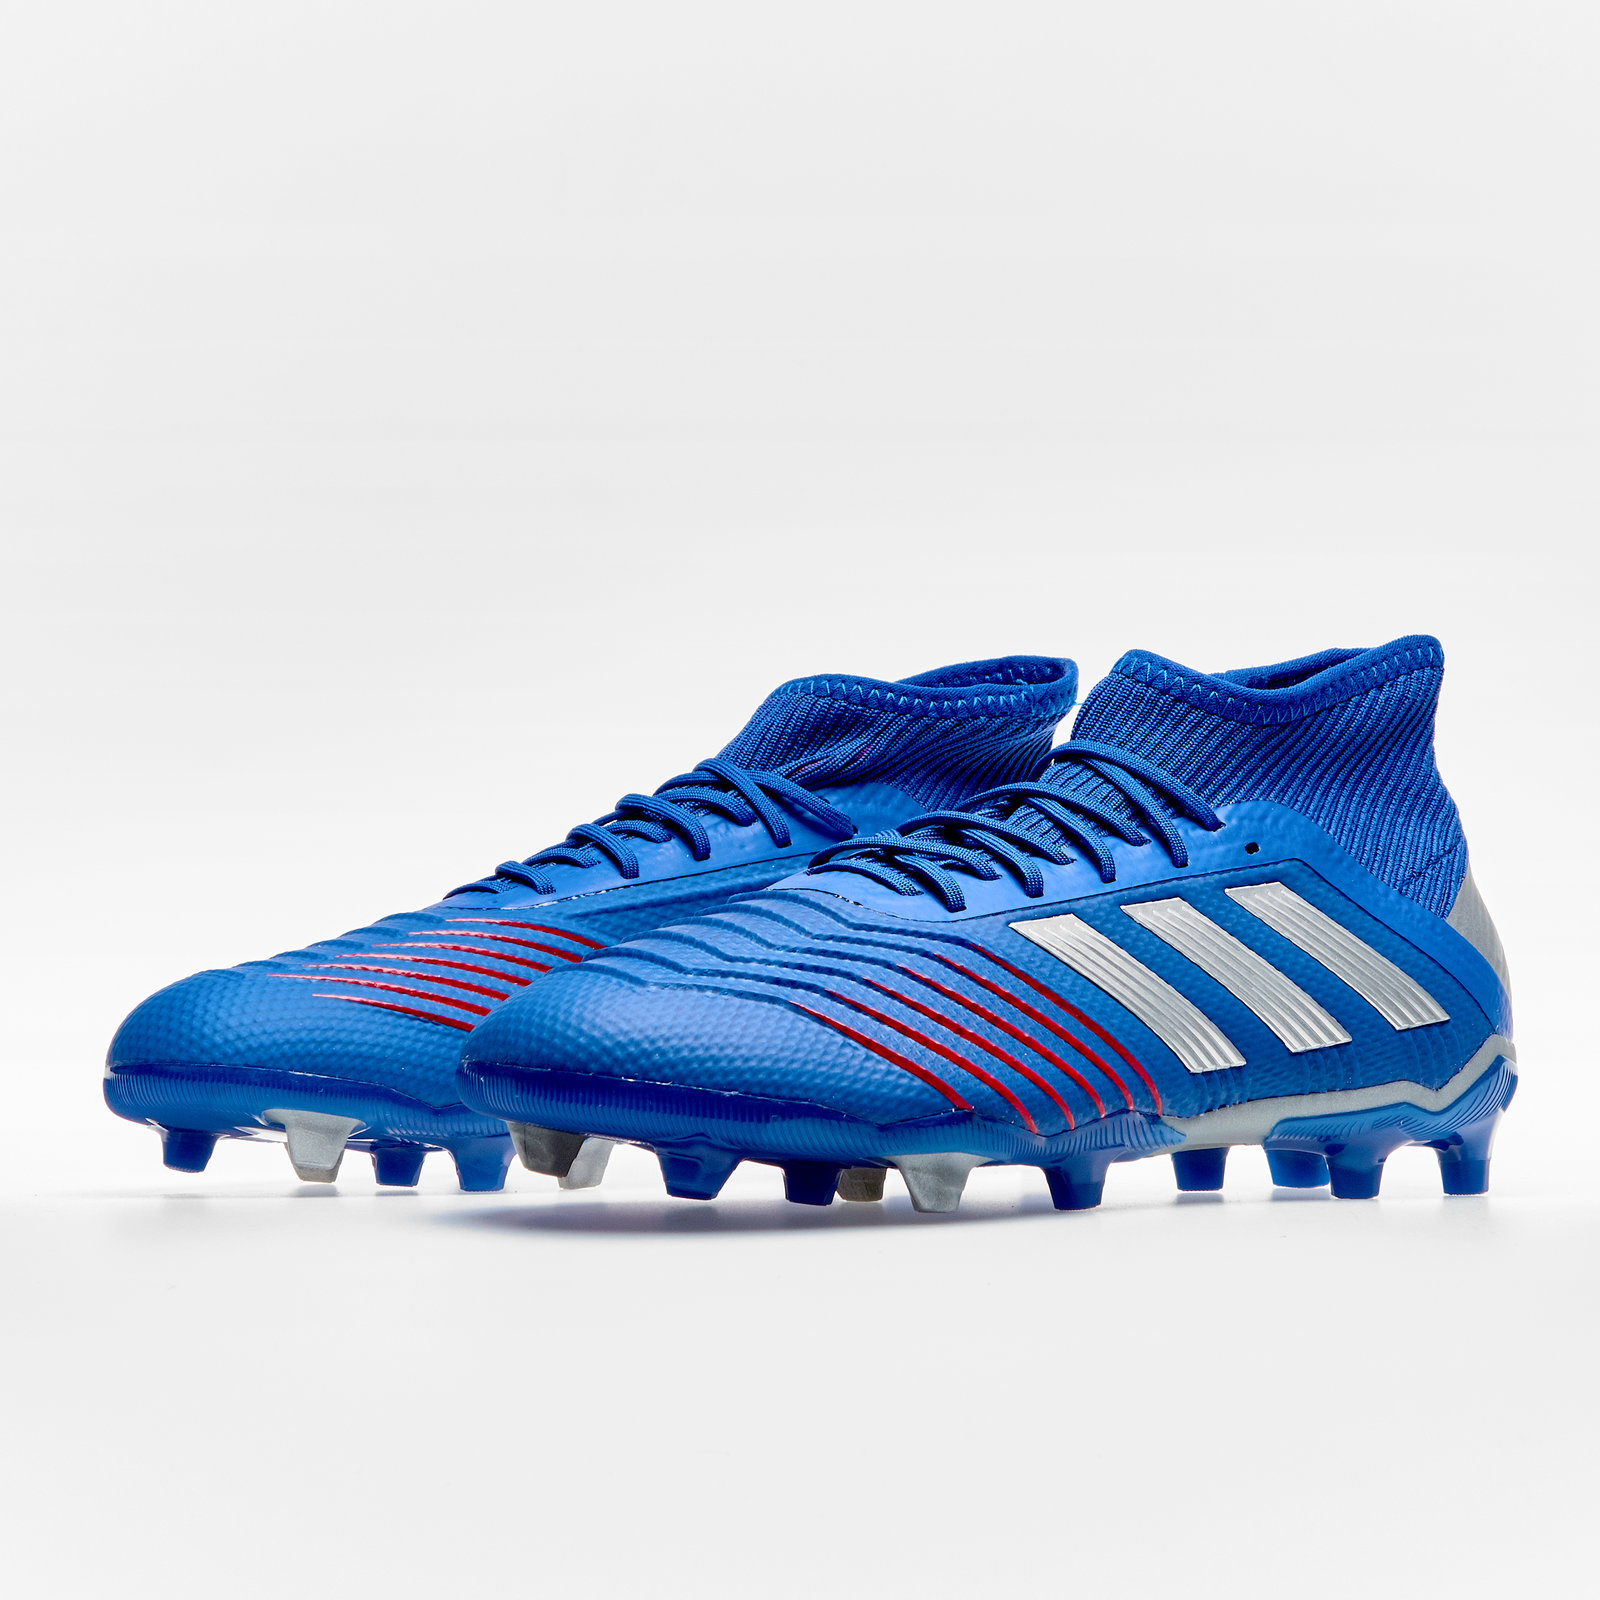 3ffe2fd09 Details about adidas Predator 19.1 Firm Ground Kids Football Boots Studs  Trainers Shoes Blue